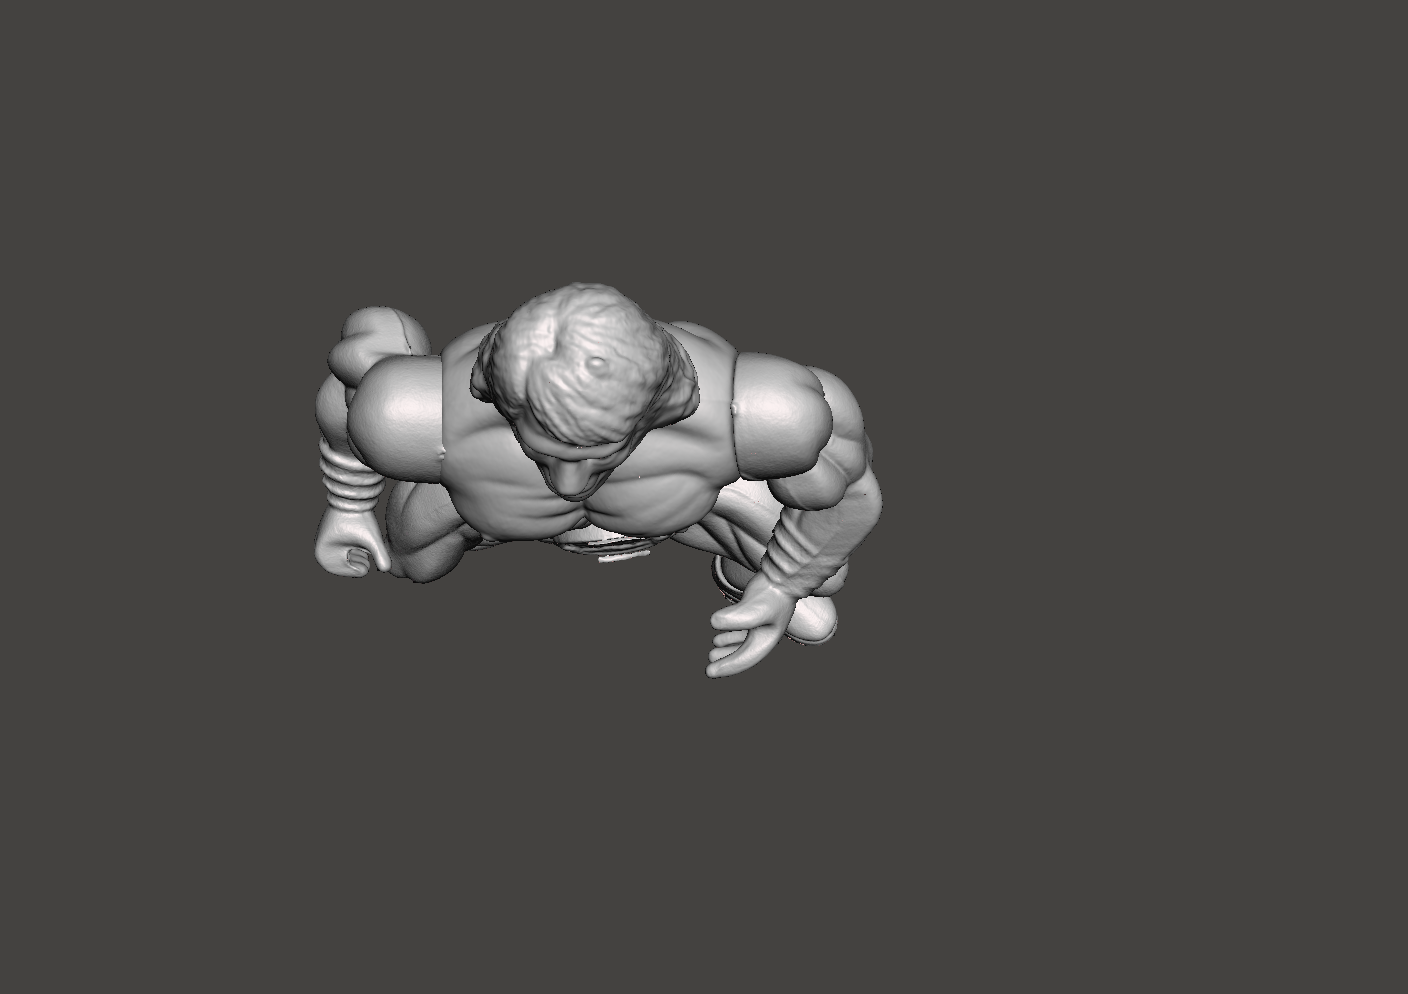 05_GXF.png Download STL file BOOTLEG GALAXY FIGHTER, GALAXY WARRIOR 2 • 3D printing object, MisJuguetes